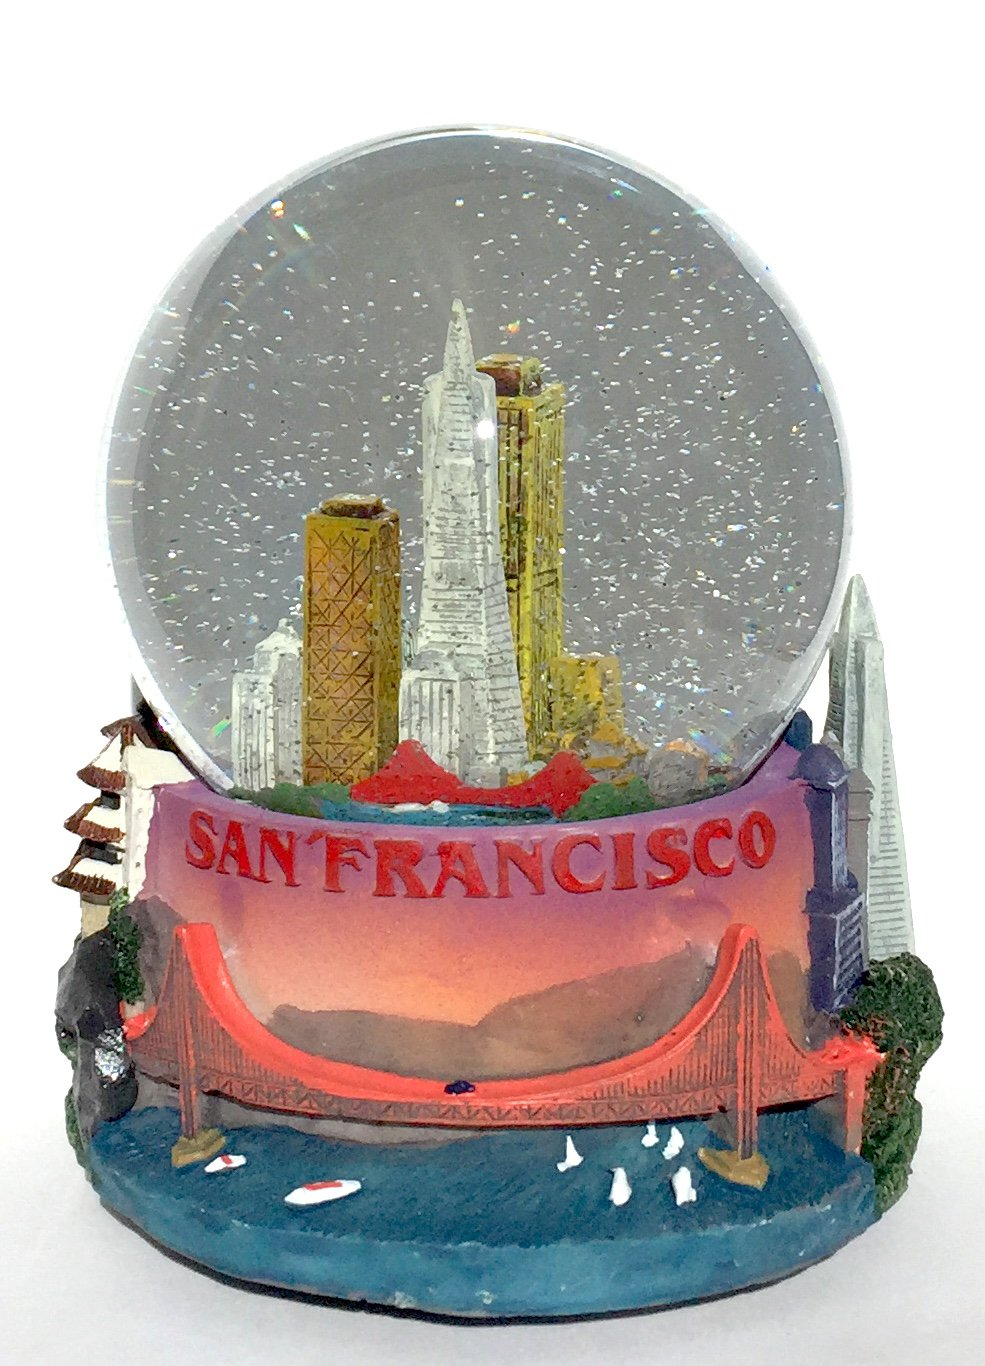 San Francisco Cityscape 100mm Musical Snow Globe Golden Gate Bridge Skyline replica Glitterdome